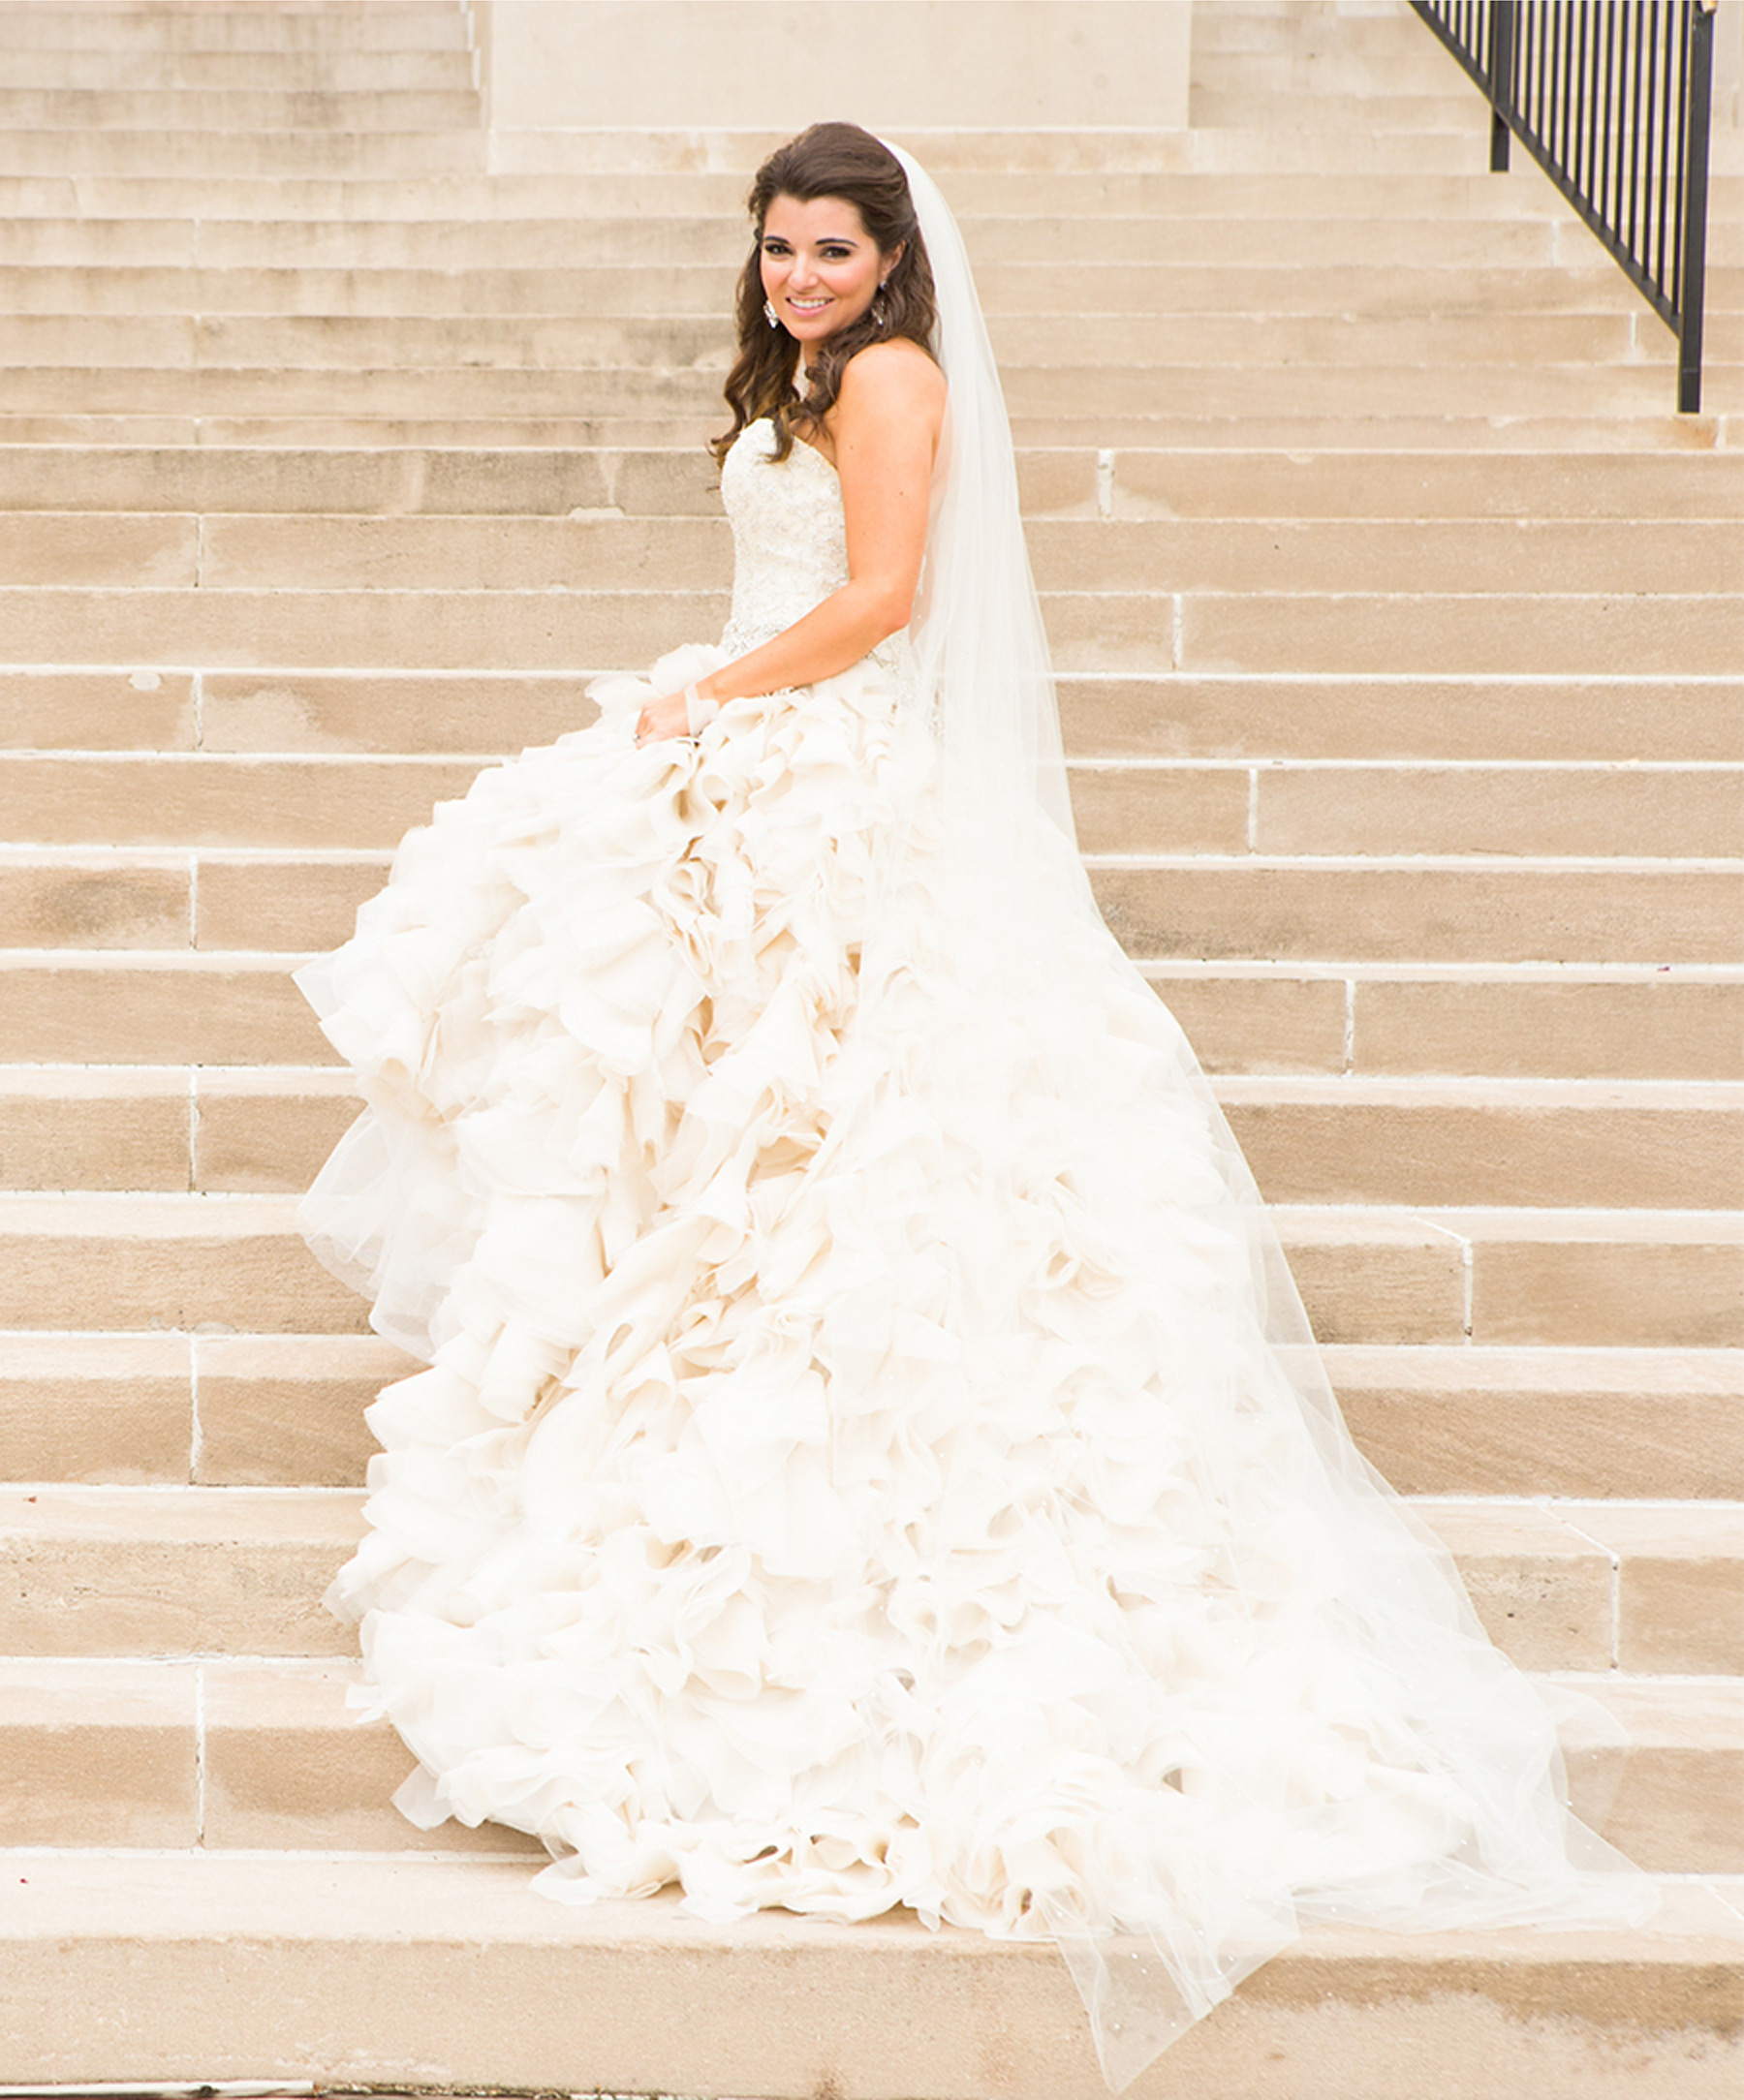 Our Muse - Glamorous Wedding In Texas: Cameron and Winston, Part 2 - Be inspired by Cameron and Winston's glamorous wedding in Texas - behind the scenes, wedding, portraits, ceci new york, ceci johnson, couture, luxury wedding invitations, custom wedding invitations, bridesmaids, bouquet, wedding dress, getting ready, wedding day, racquet club, midland, texas